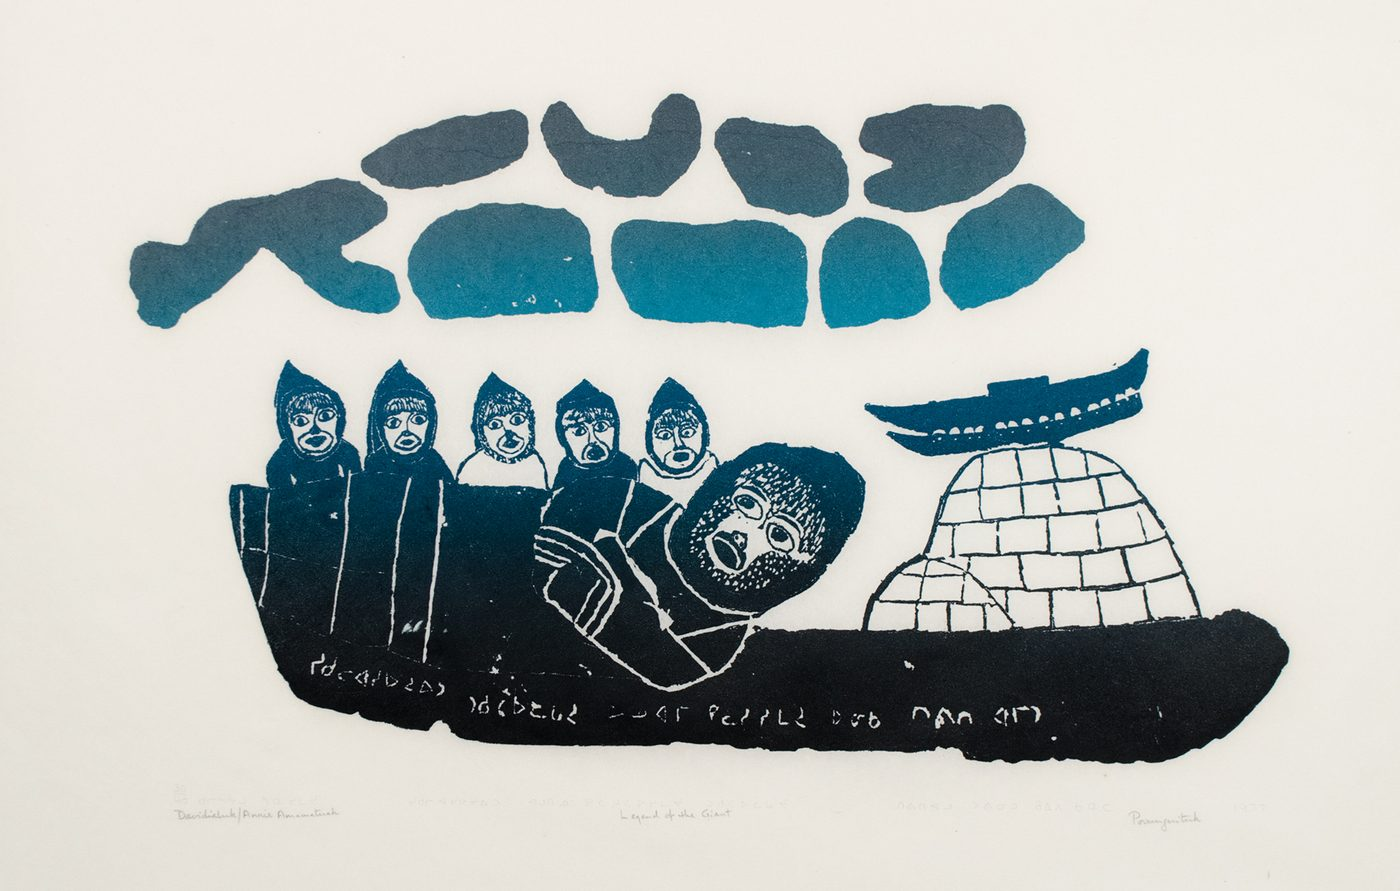 illustration of a giant person with five smaller people, an igloo, and several colored shapes